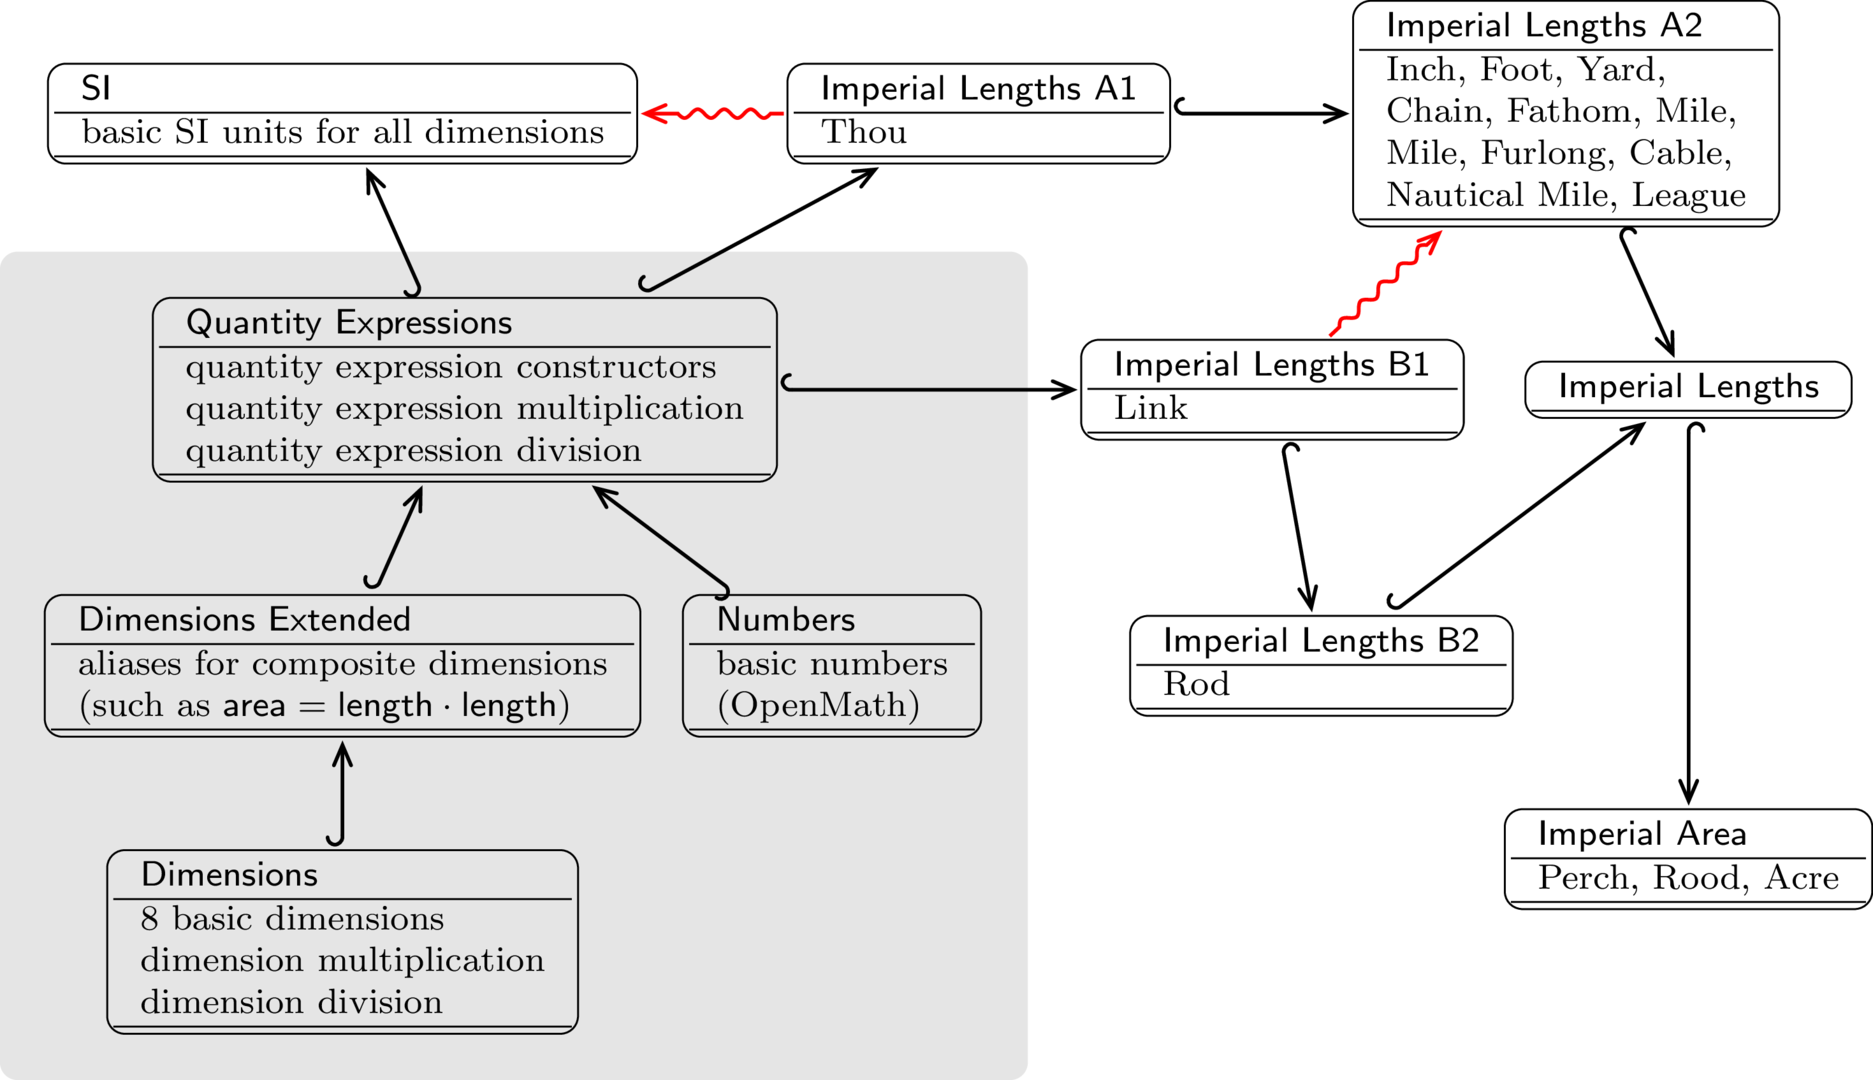 2015/wiesing_tom/project/presentation/imgs/graph1.png